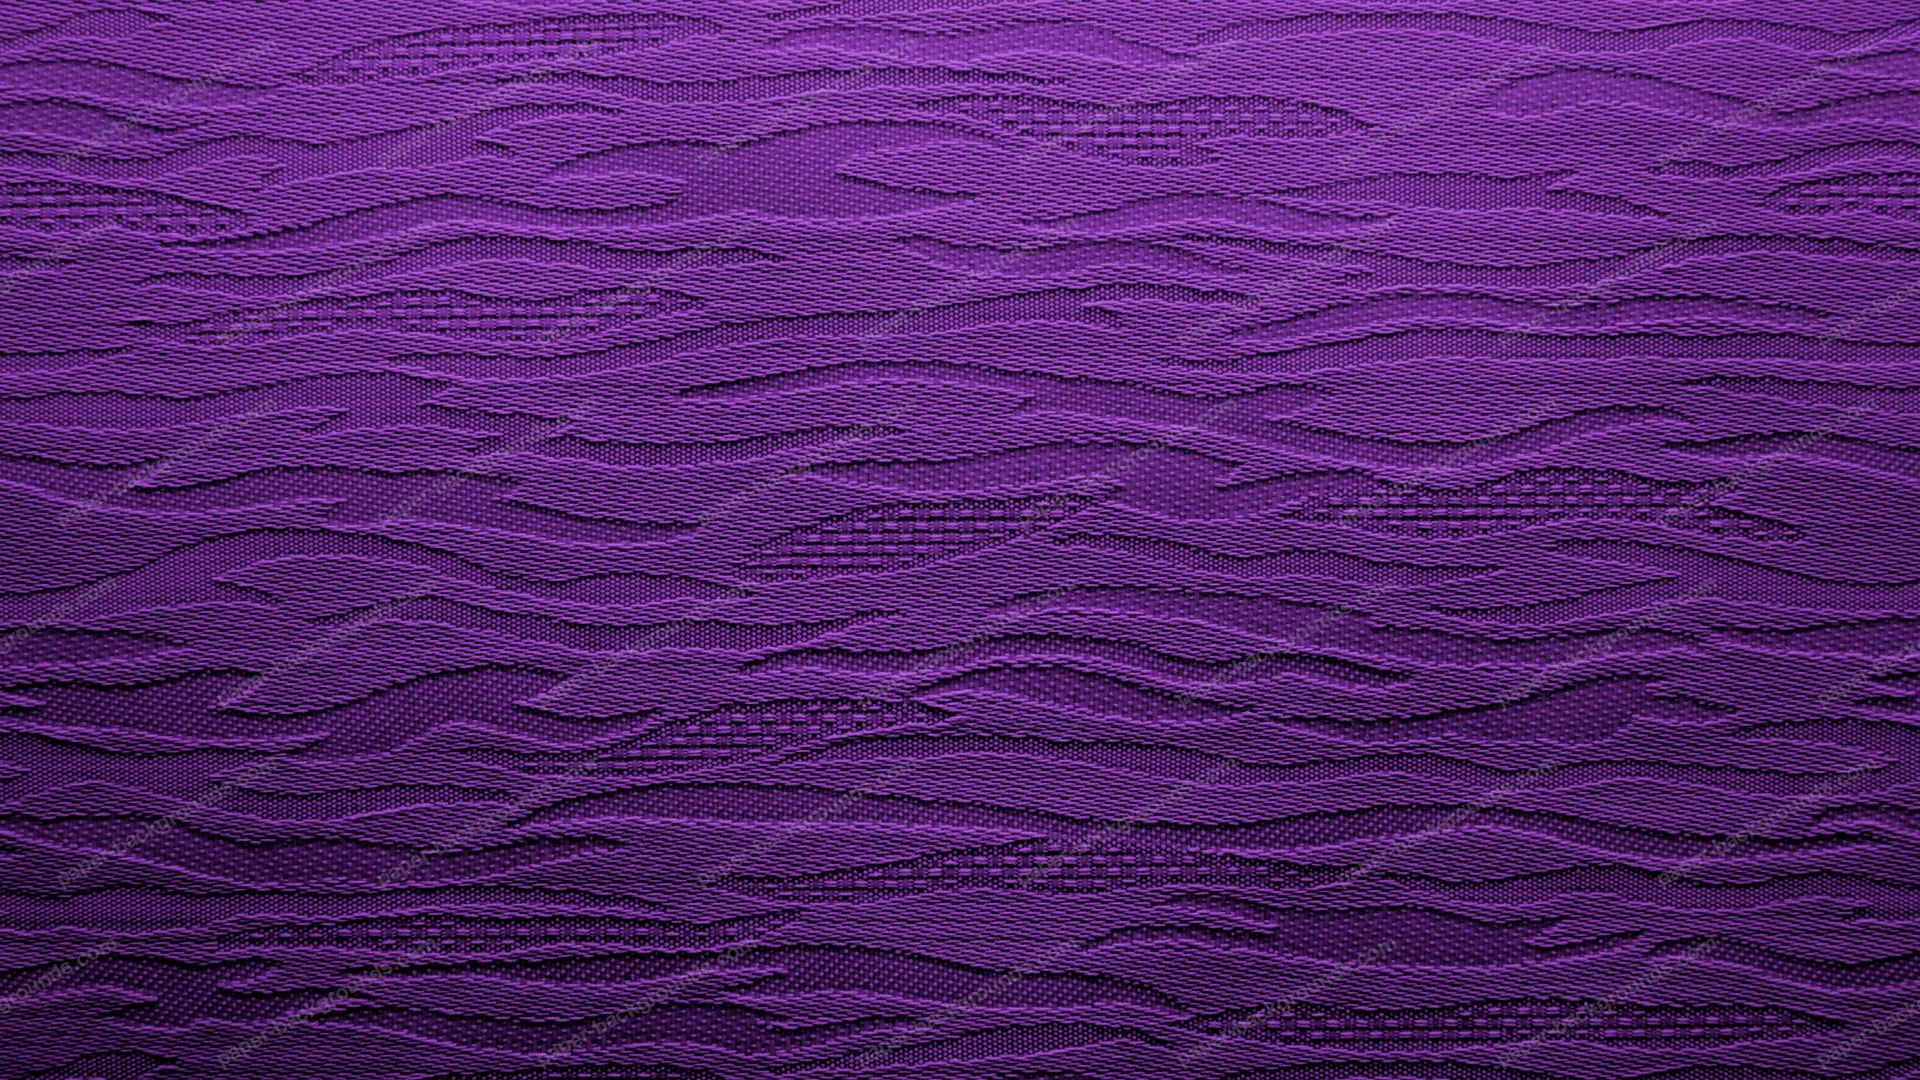 Violet Canvas Background With Waves HD 1920 x 1080p